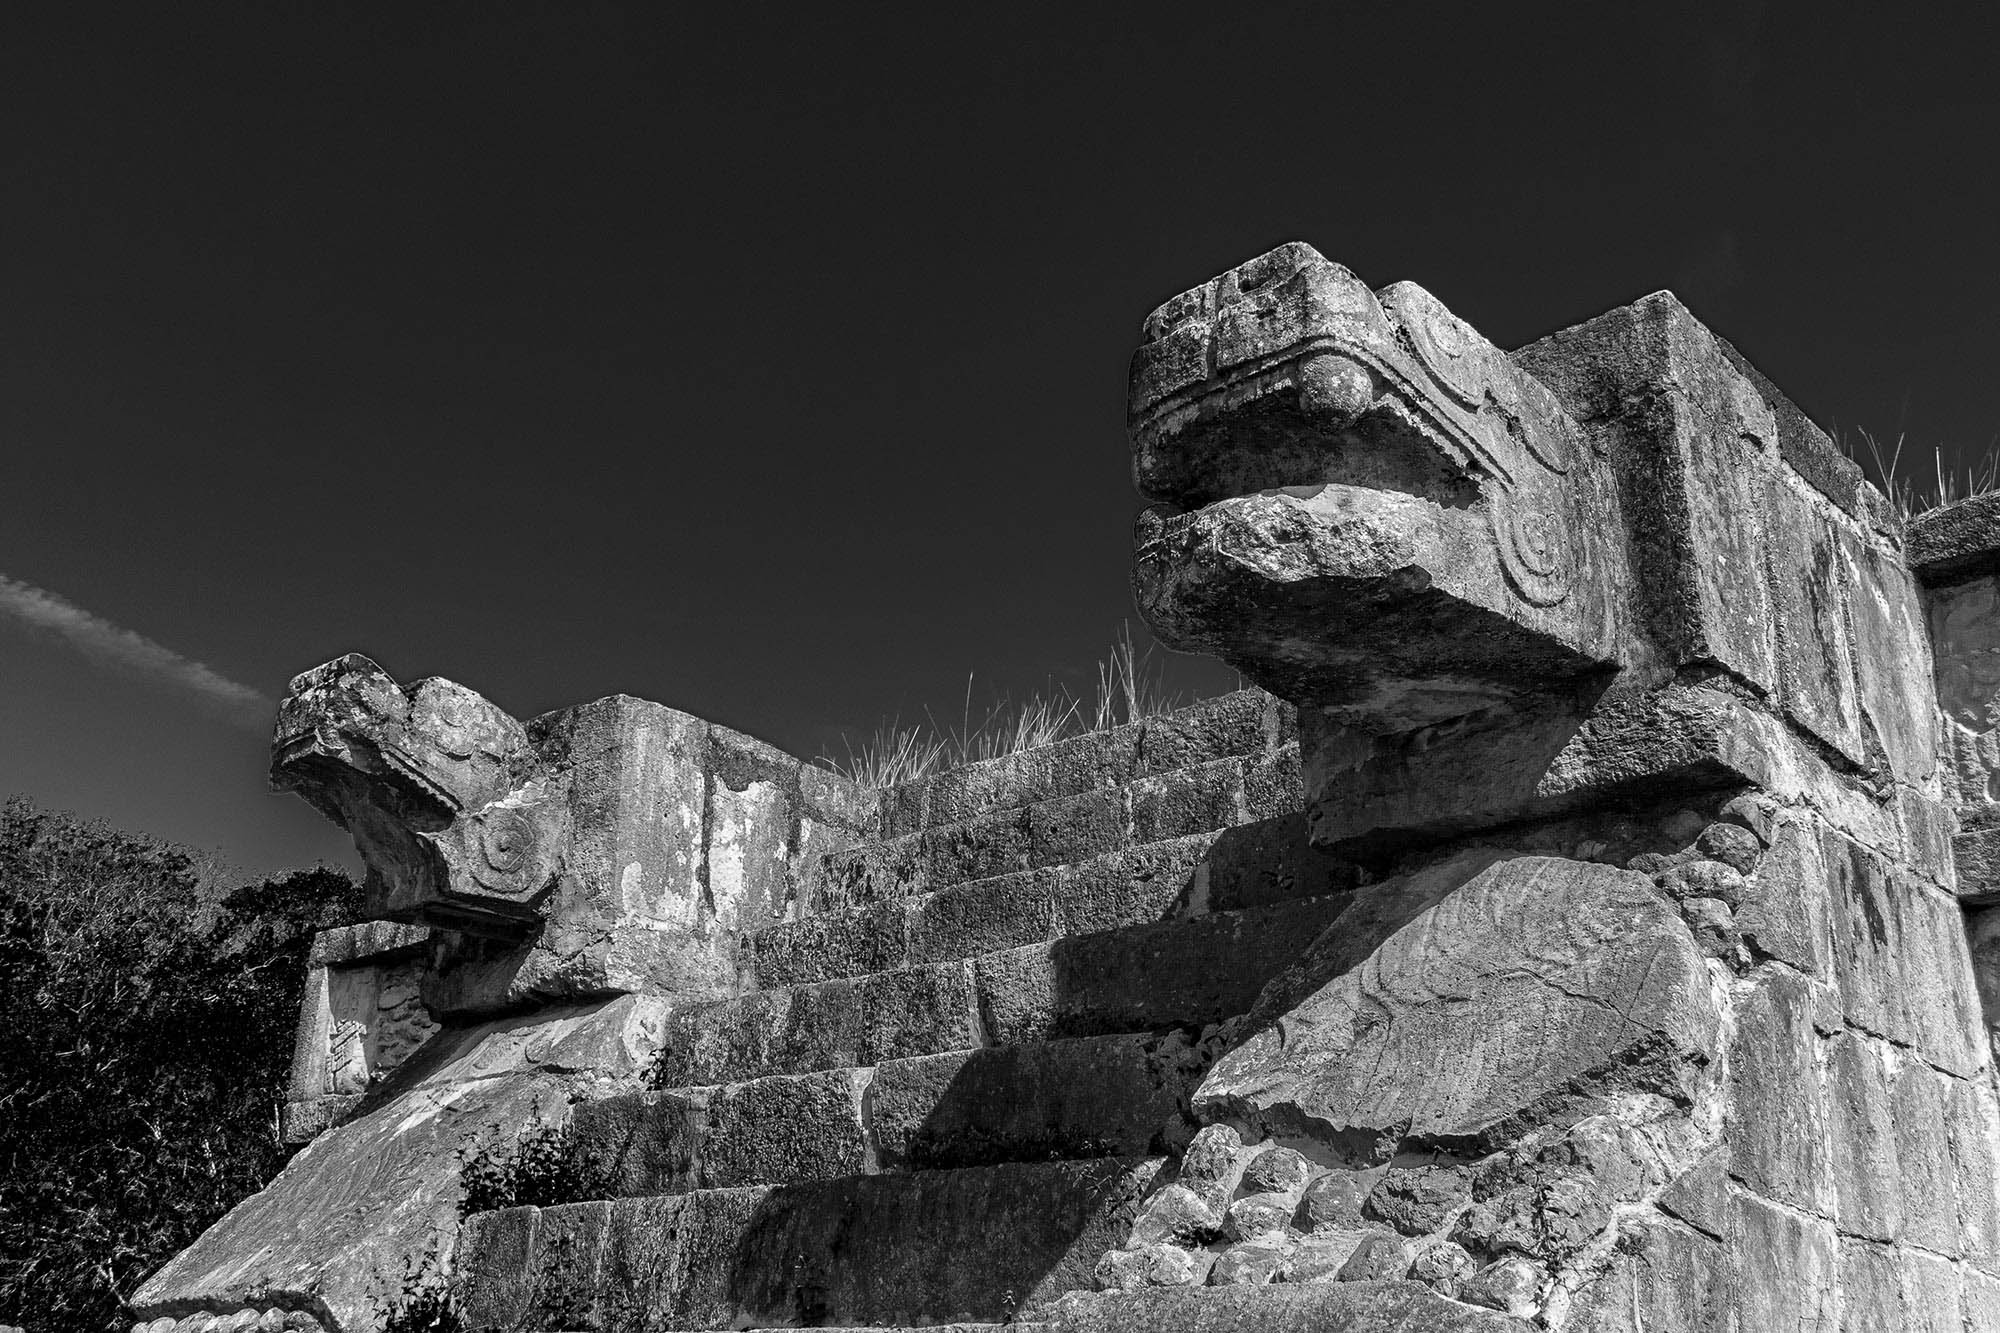 The Platform of the Eagles and Jaguars in Chichen Itza